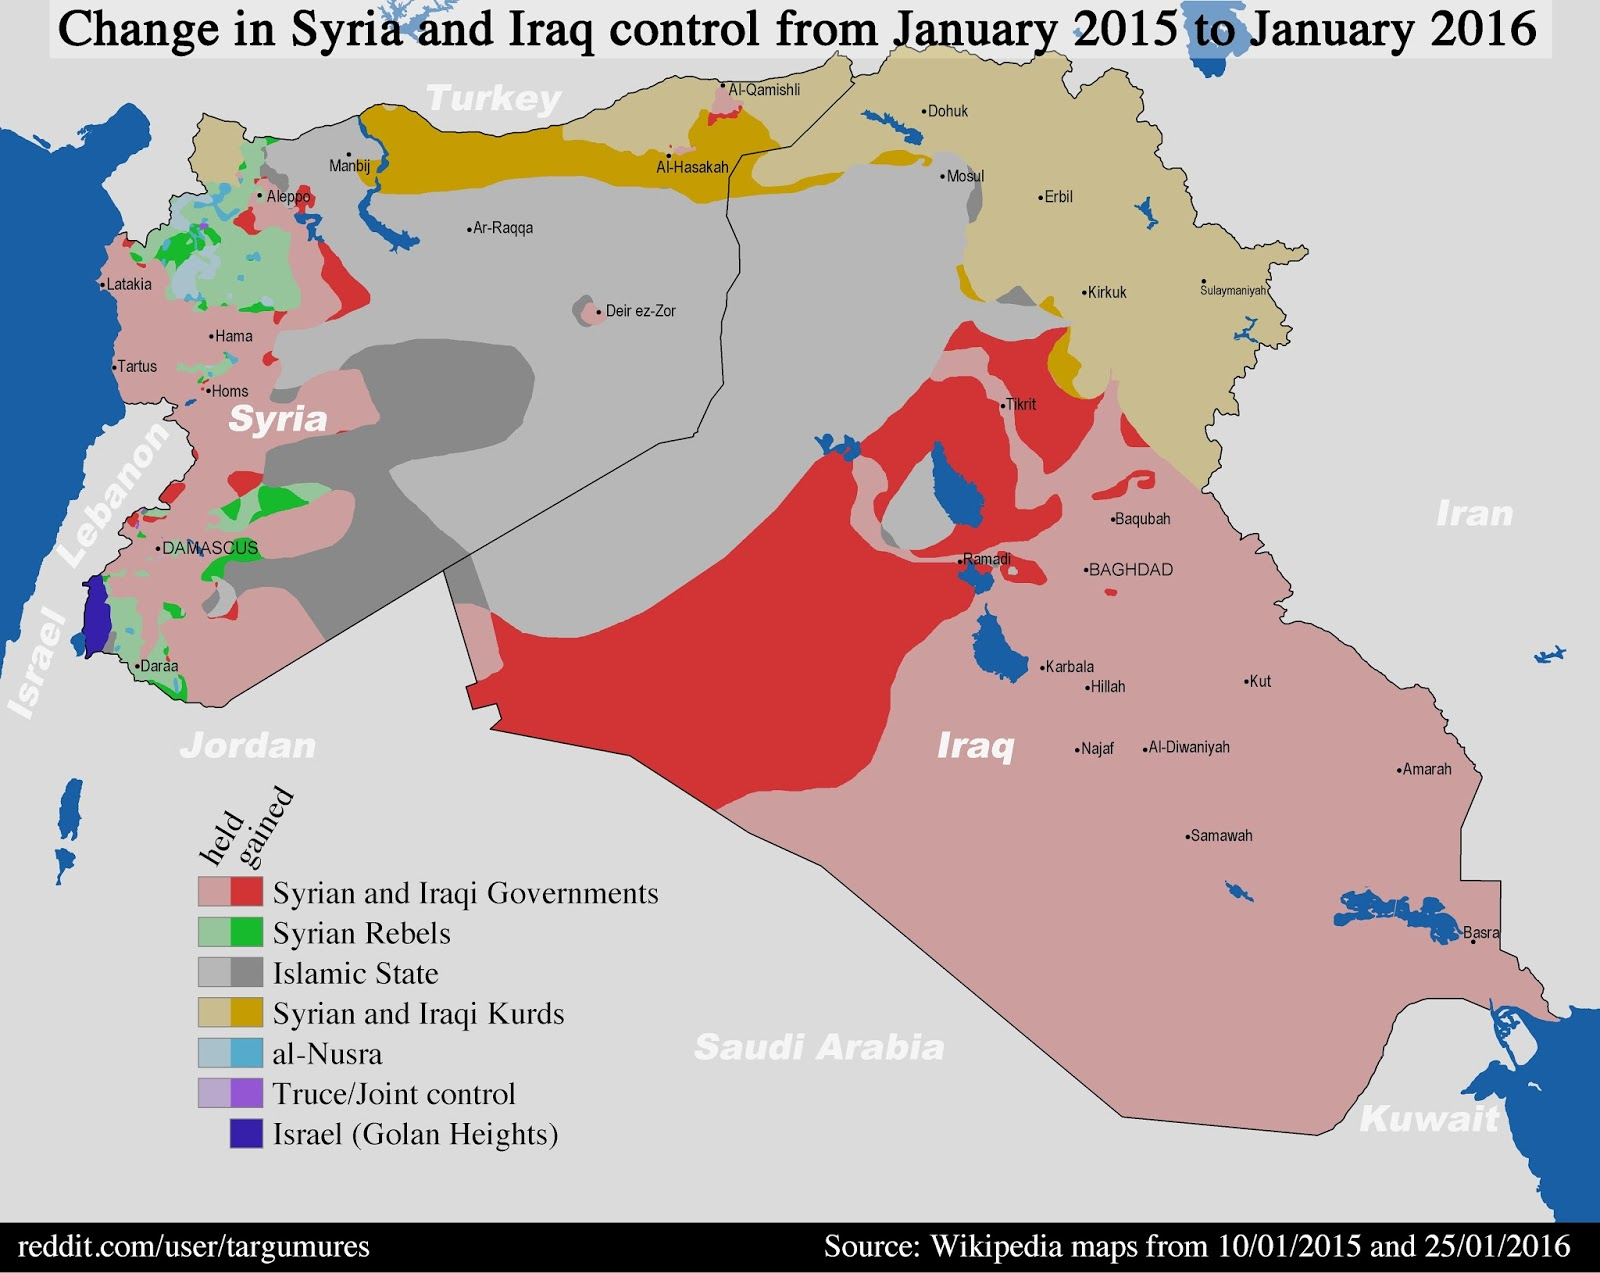 Changes in who controls territories in Syria & Iraq (January 2015 - January 2016)